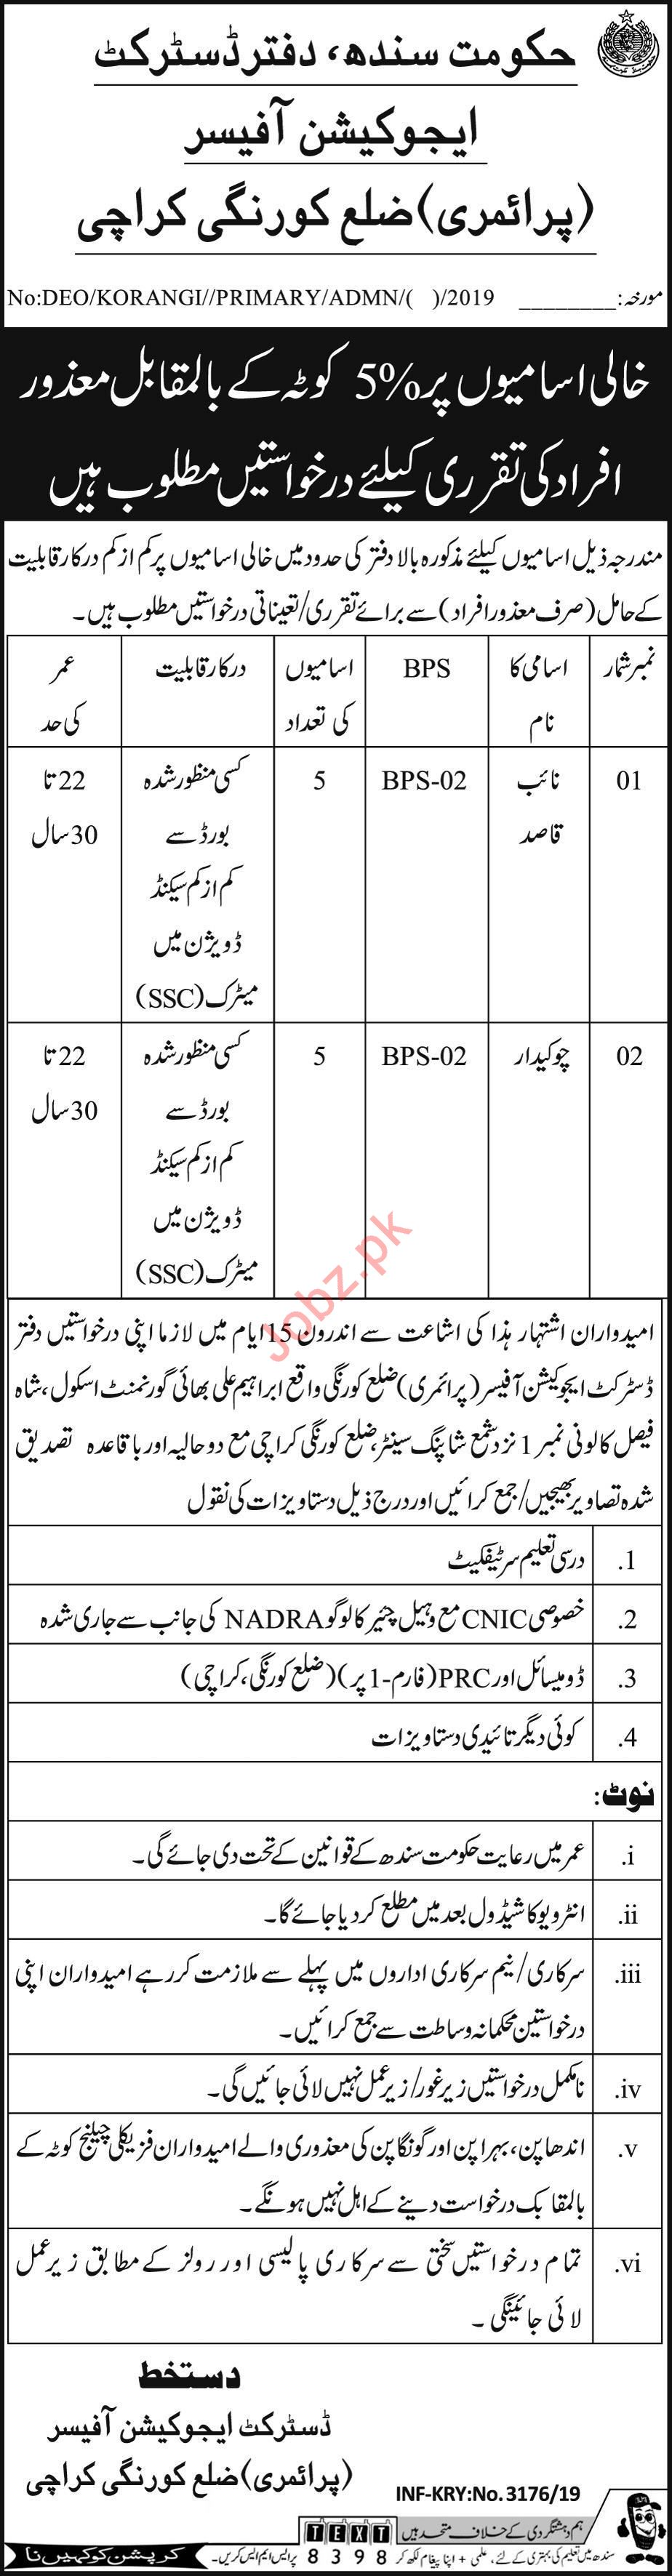 Irrigation Department Mirpur Khas Jobs 2019